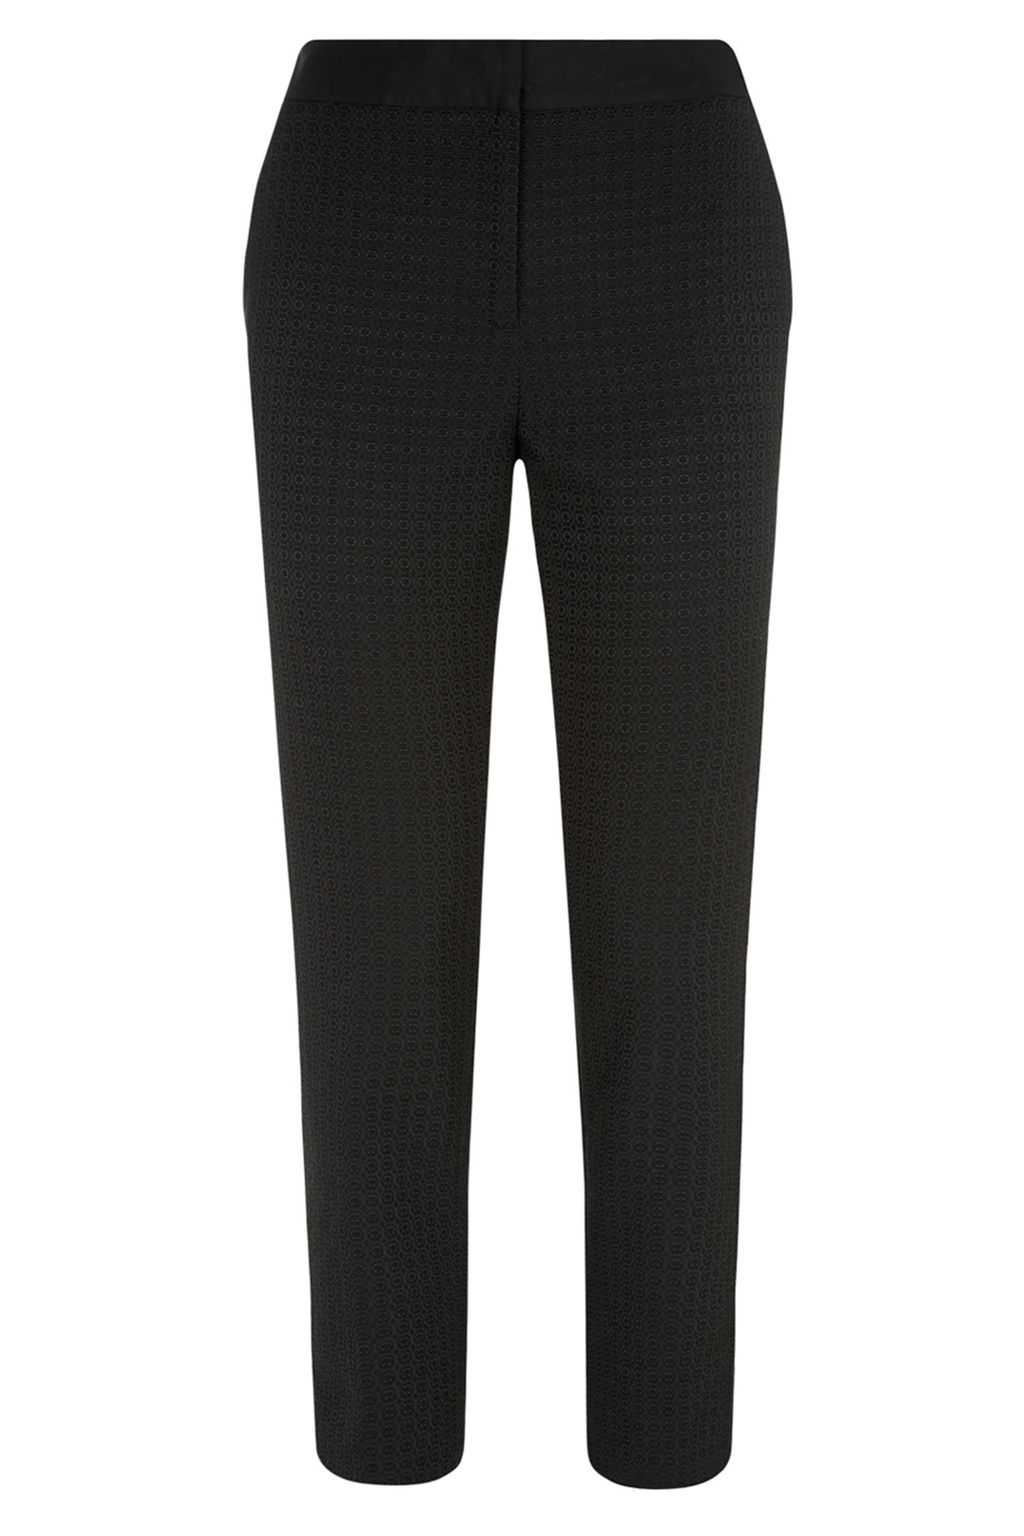 Jackie Trouser, Black - length: standard; pattern: plain; style: peg leg; waist: mid/regular rise; predominant colour: black; occasions: evening, work; fibres: polyester/polyamide - stretch; fit: straight leg; pattern type: fabric; texture group: woven light midweight; season: a/w 2014